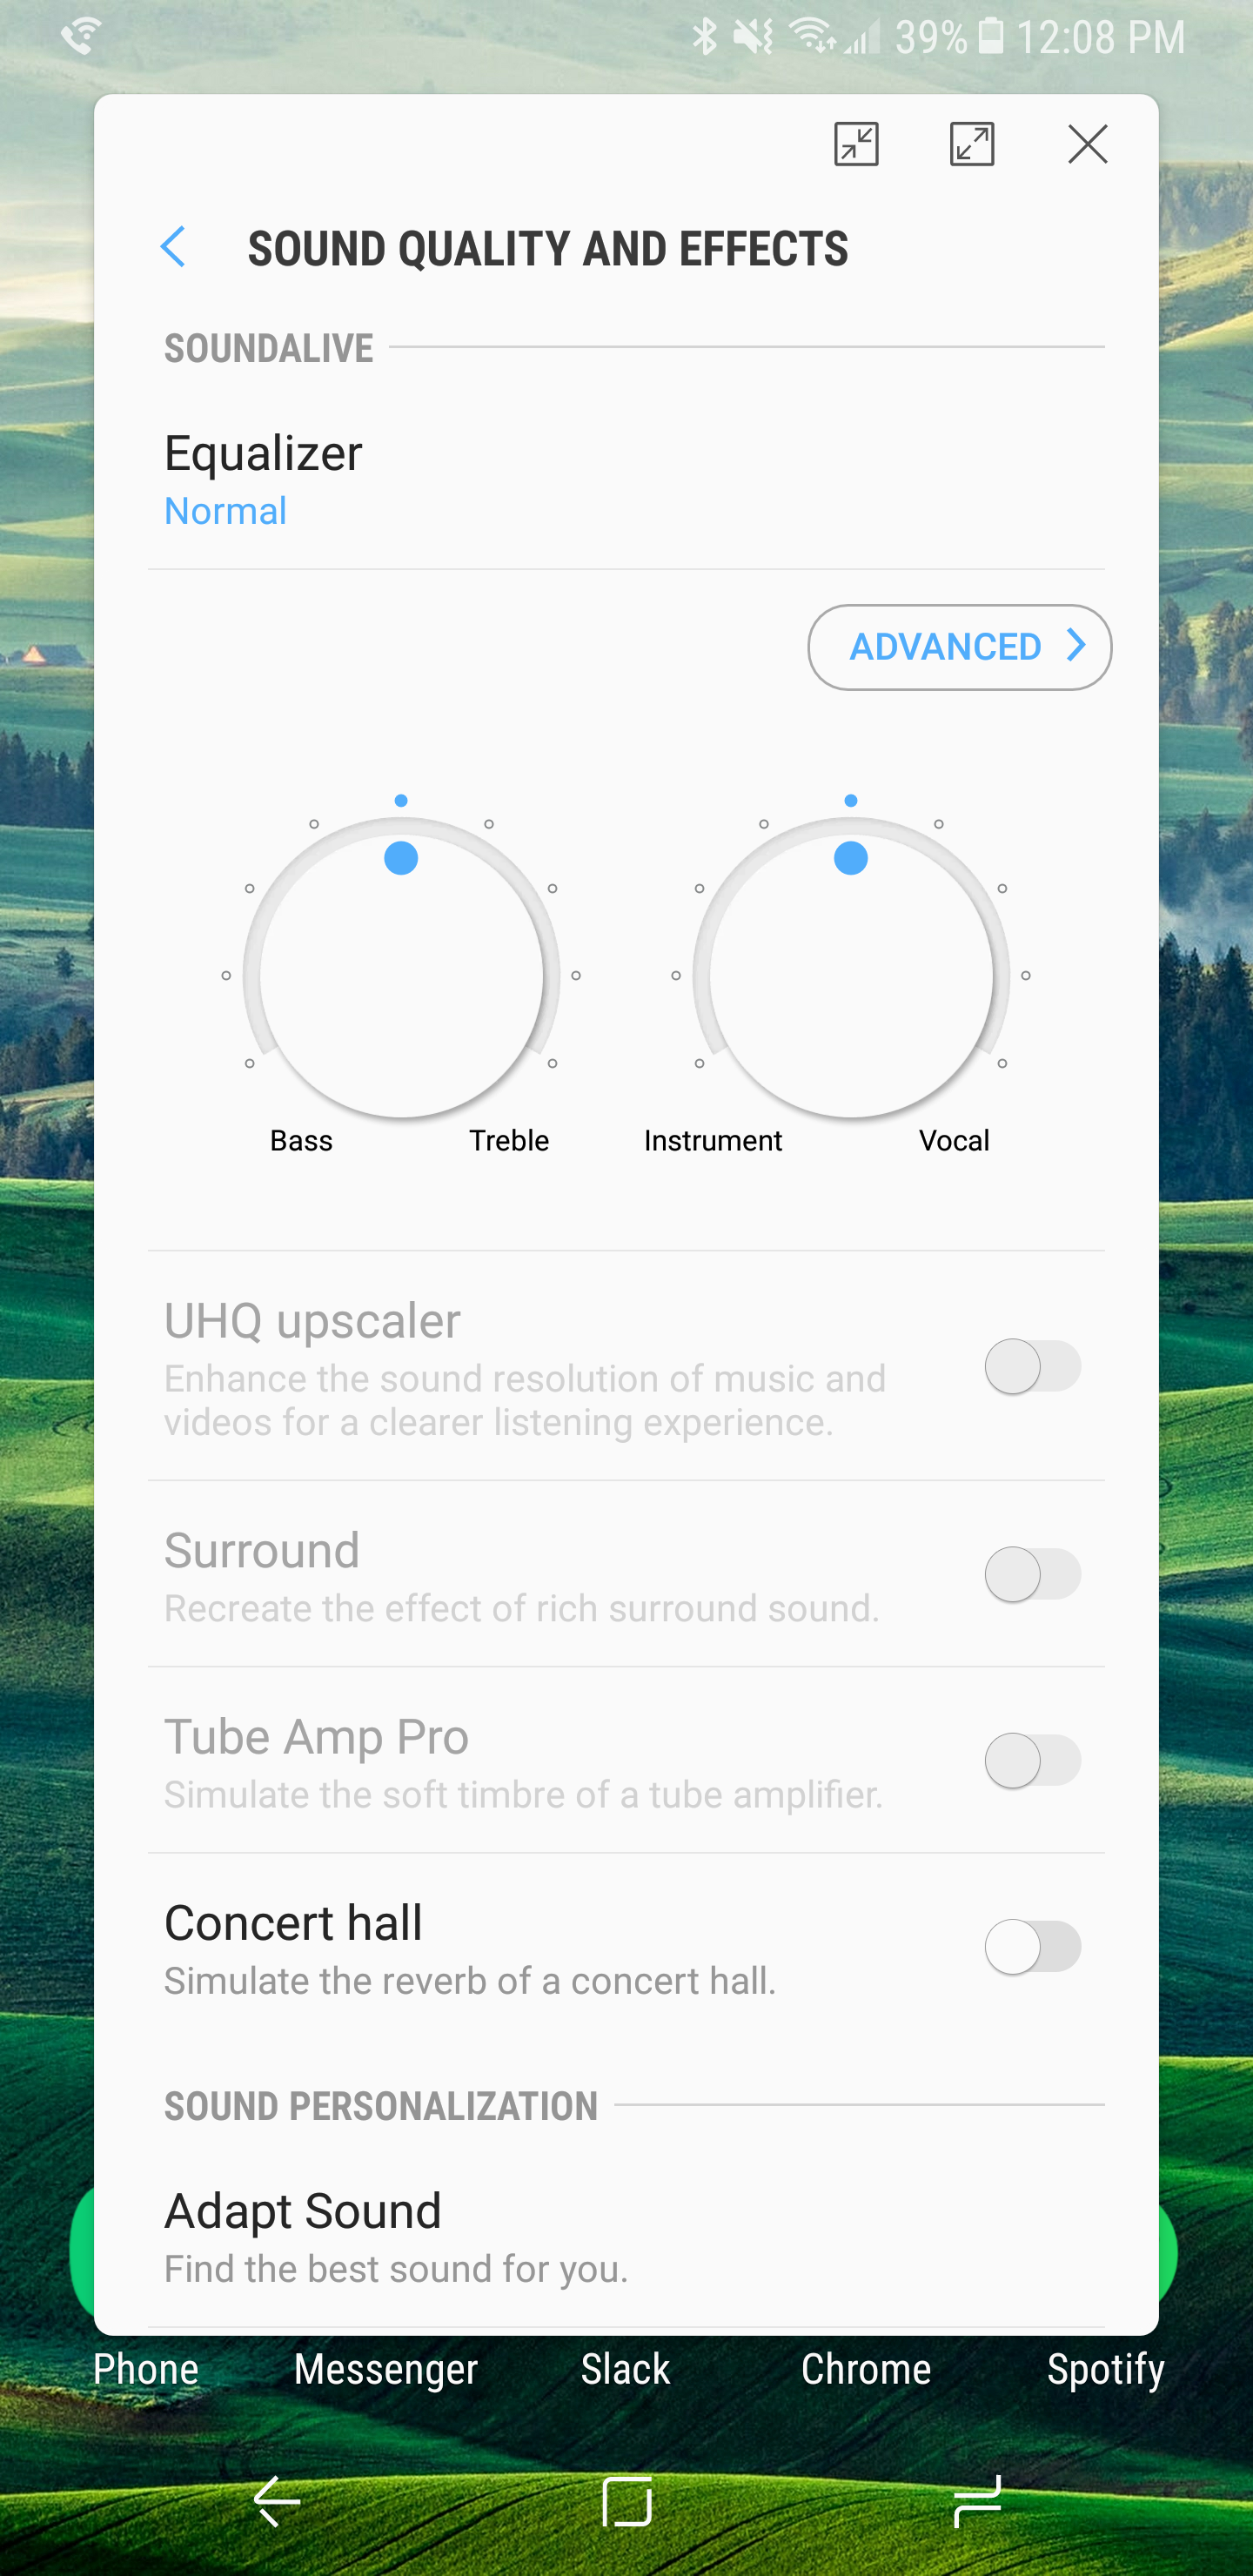 Samsung's new SoundAssistant app gives you greater control over